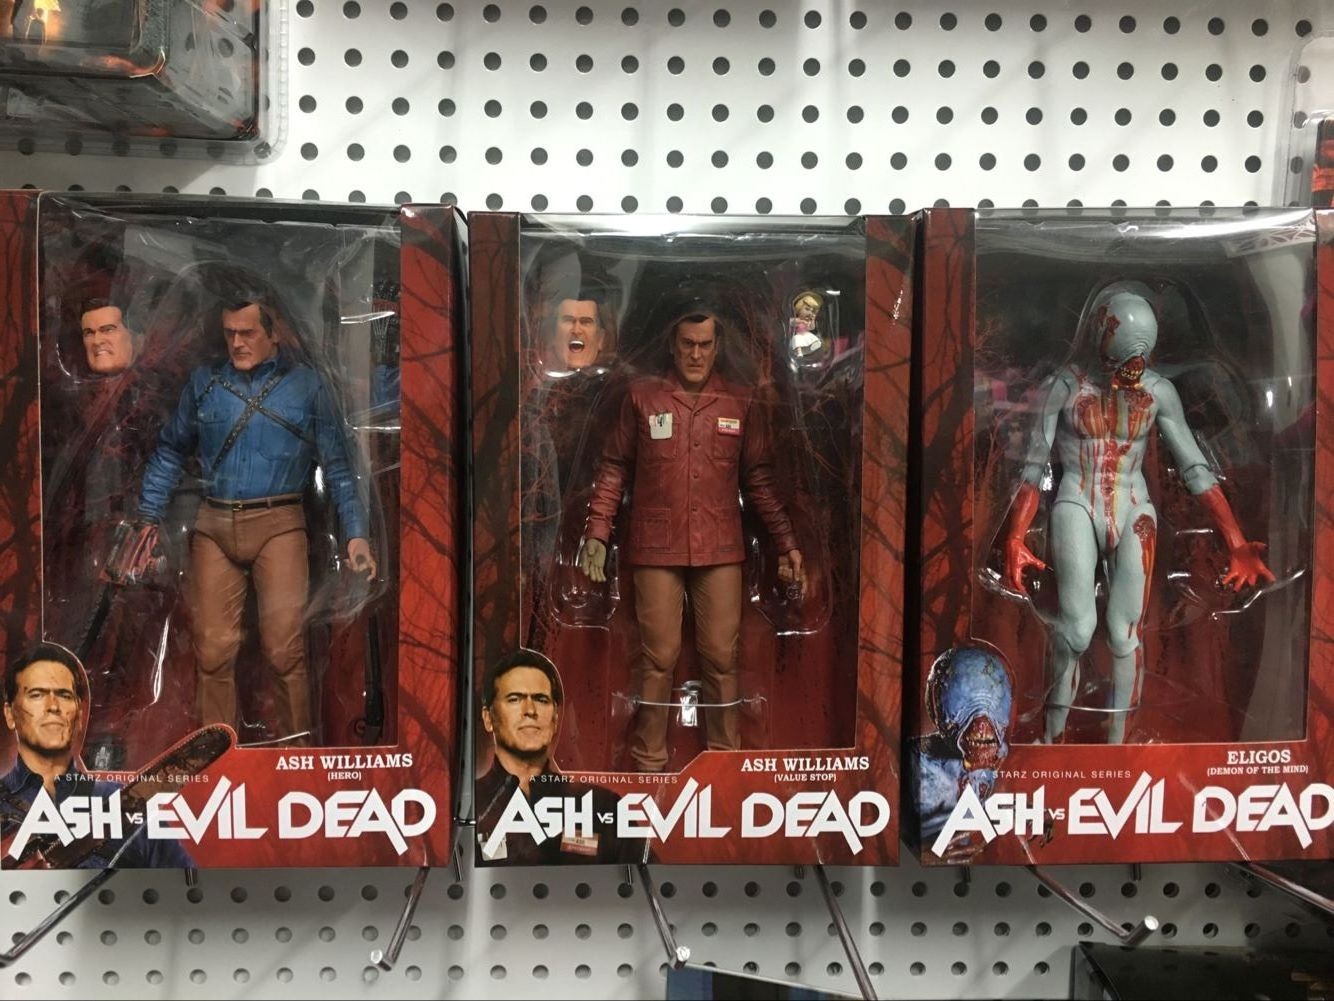 NECA The Evil Dead Ash Vs Evil Dead Ash Williams Eligos PVC Action Figure Collectible Model Toy 18cm KT3427 neca the evil dead ash vs evil dead ash williams eligos pvc action figure collectible model toy 18cm kt3427